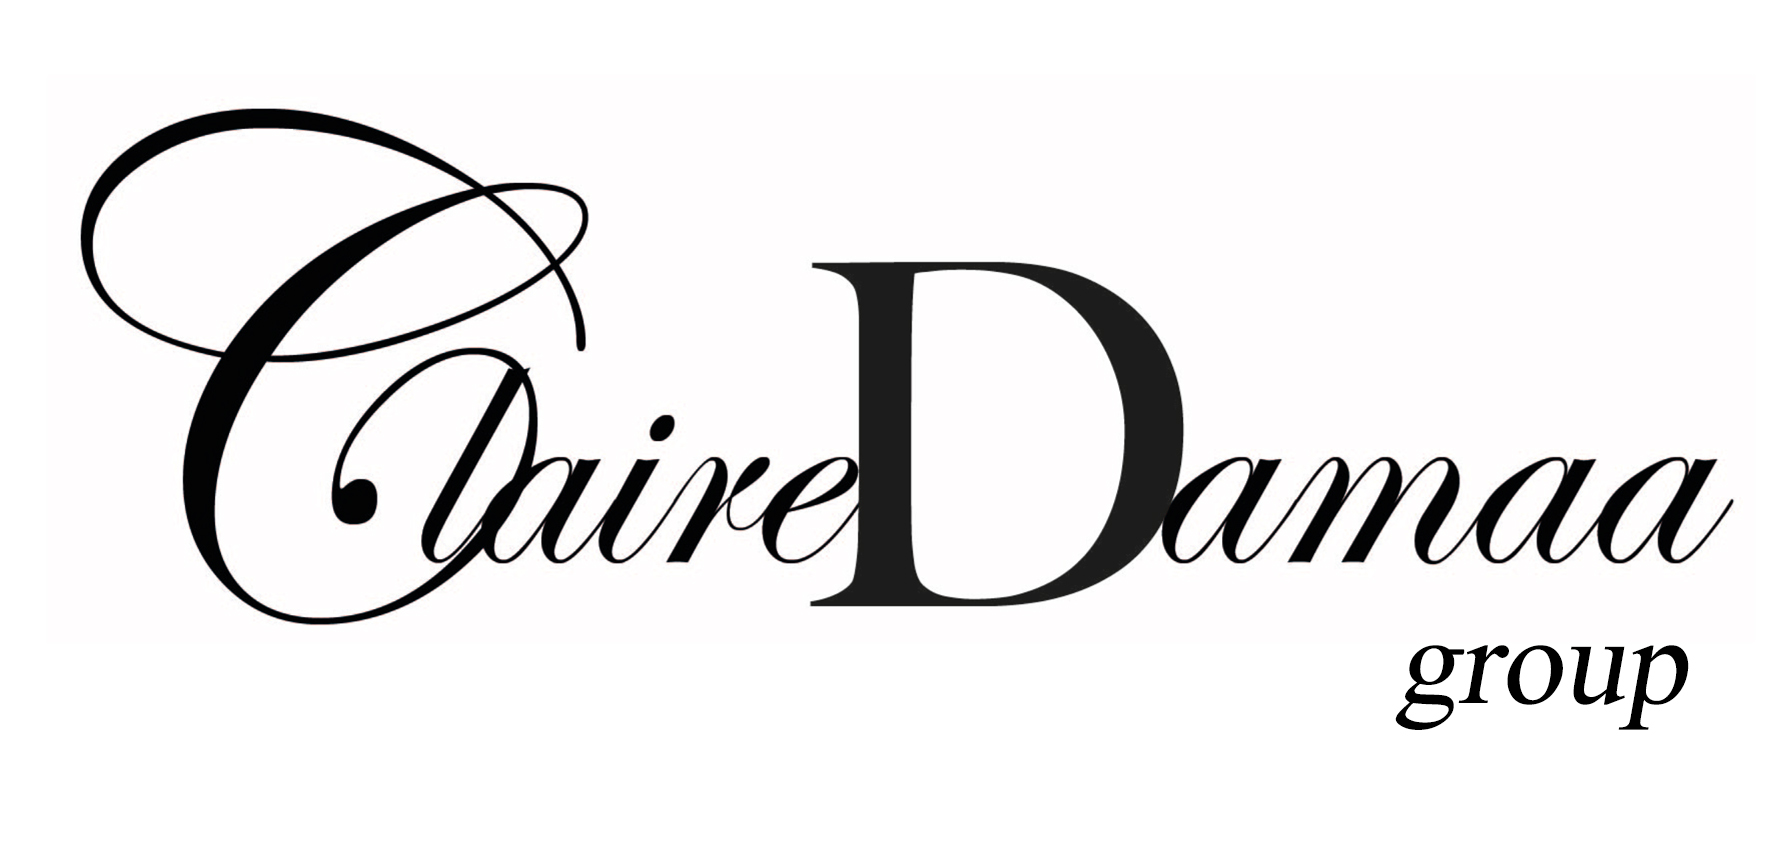 claire damaa group logo